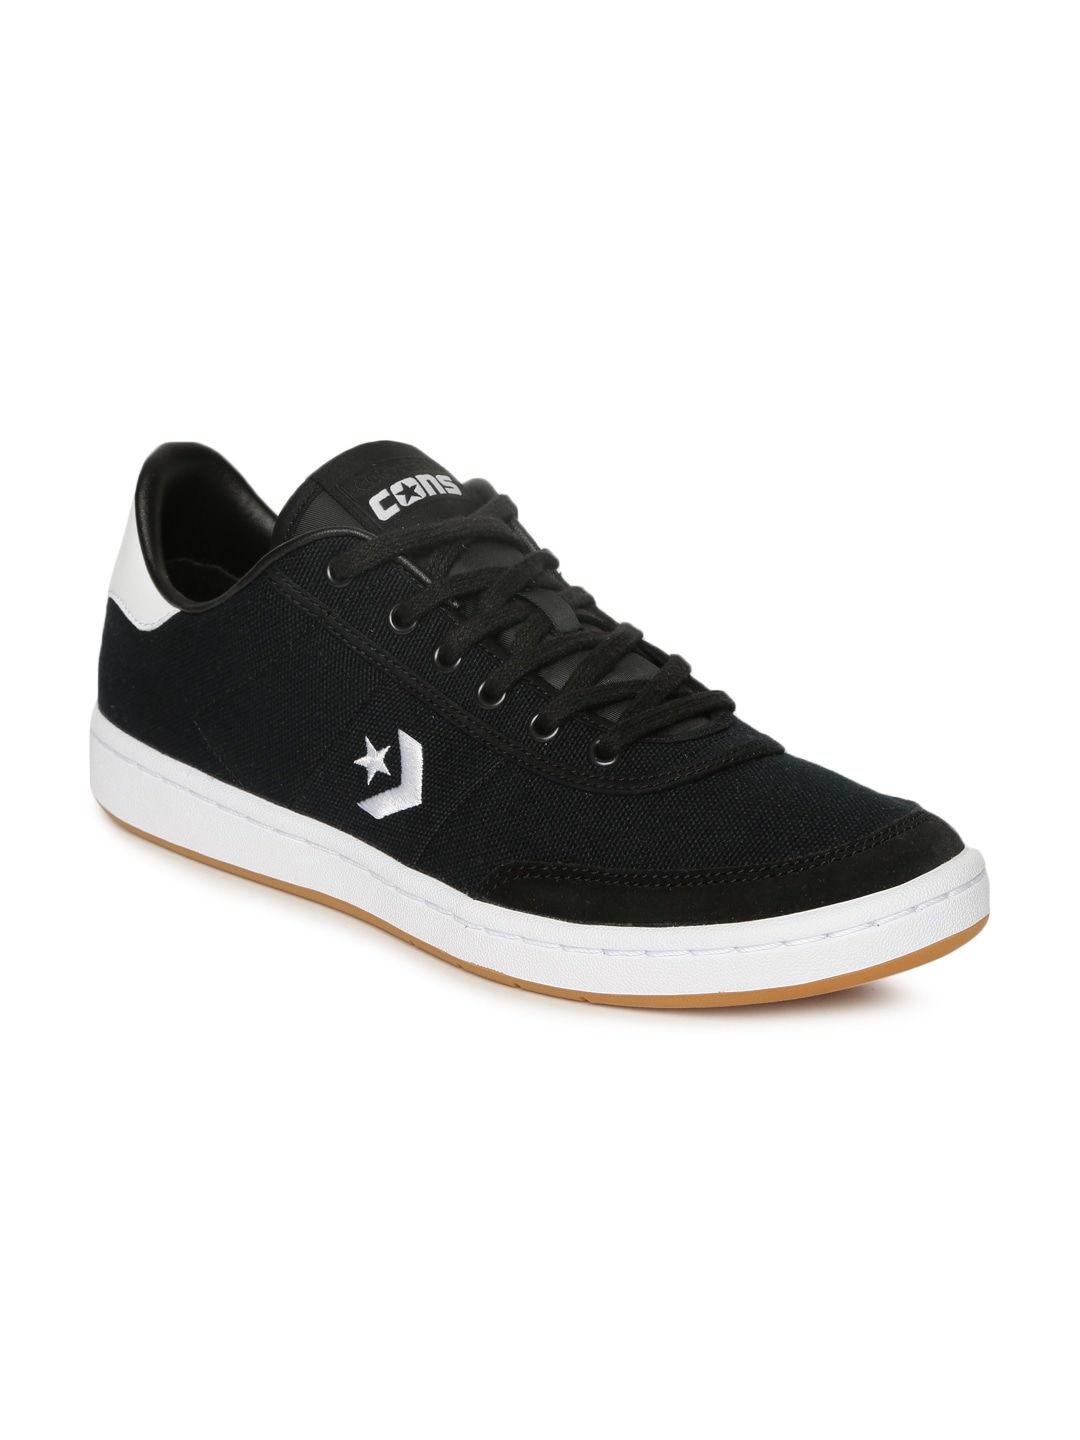 Converse Shoes - Buy Converse Canvas Shoes   Sneakers Online 1c5f4a6fd